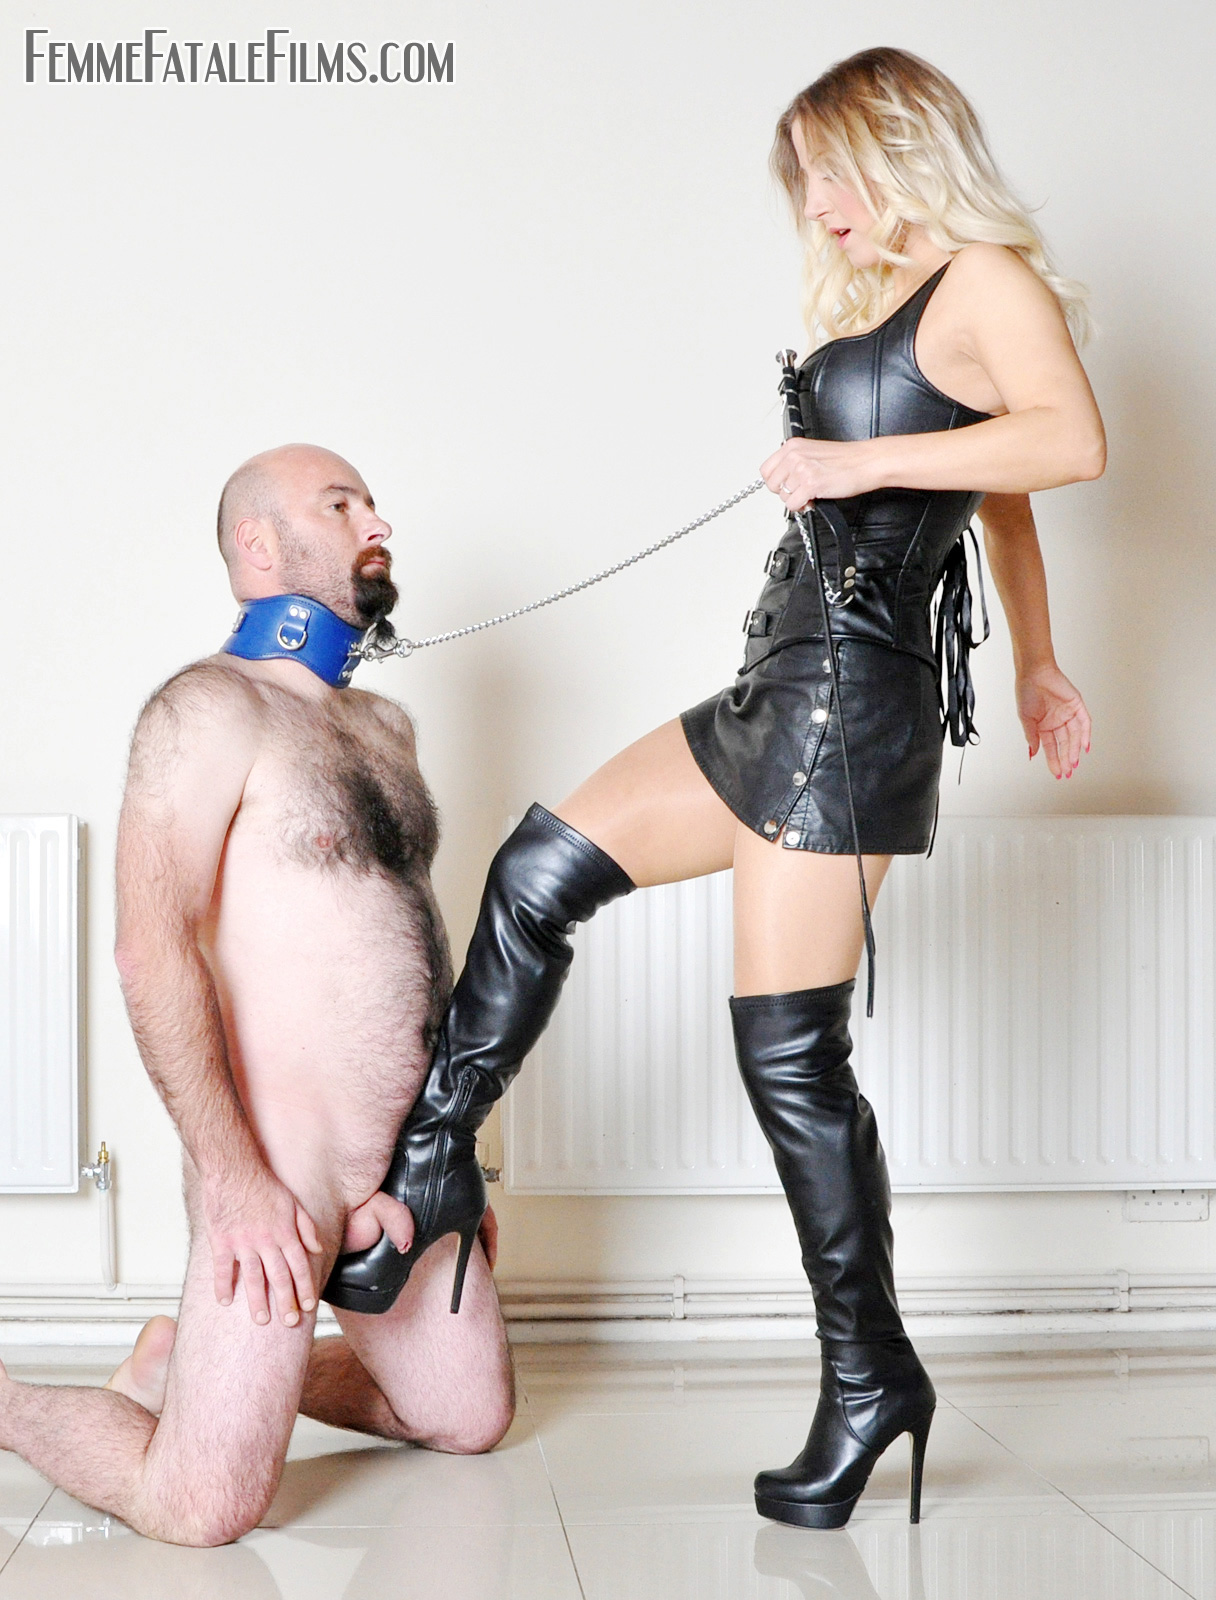 Blonde Milf in leather mini dress and boots